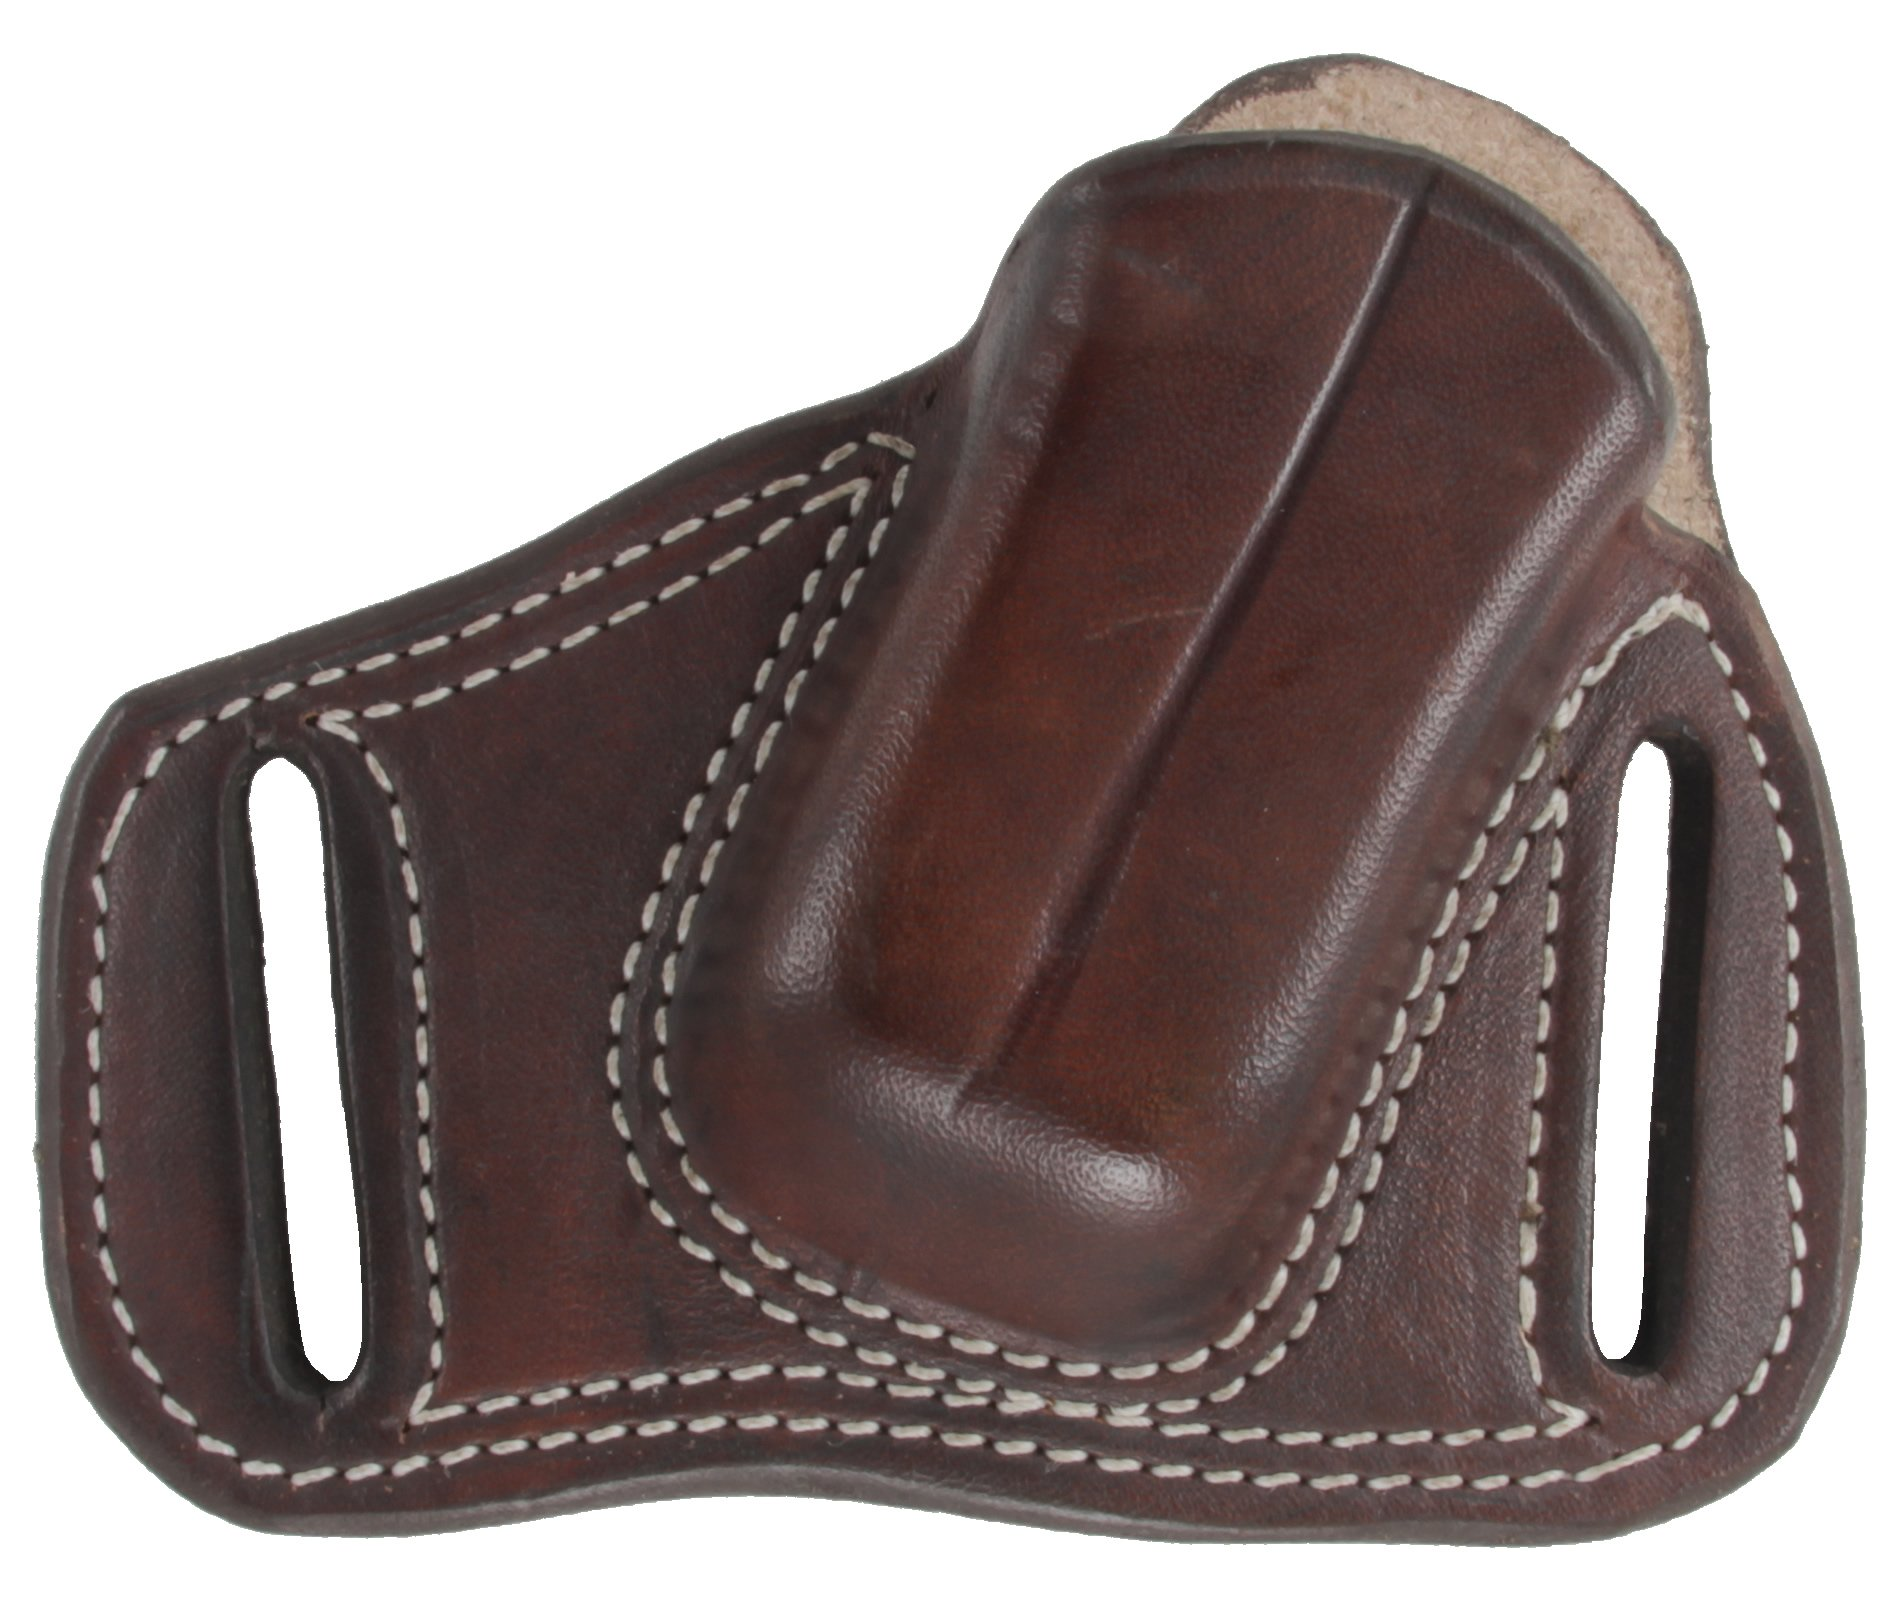 Leather Pancake Carry Sheath Holster for Gerber Suspension Multitool 22-01471, 22-41471